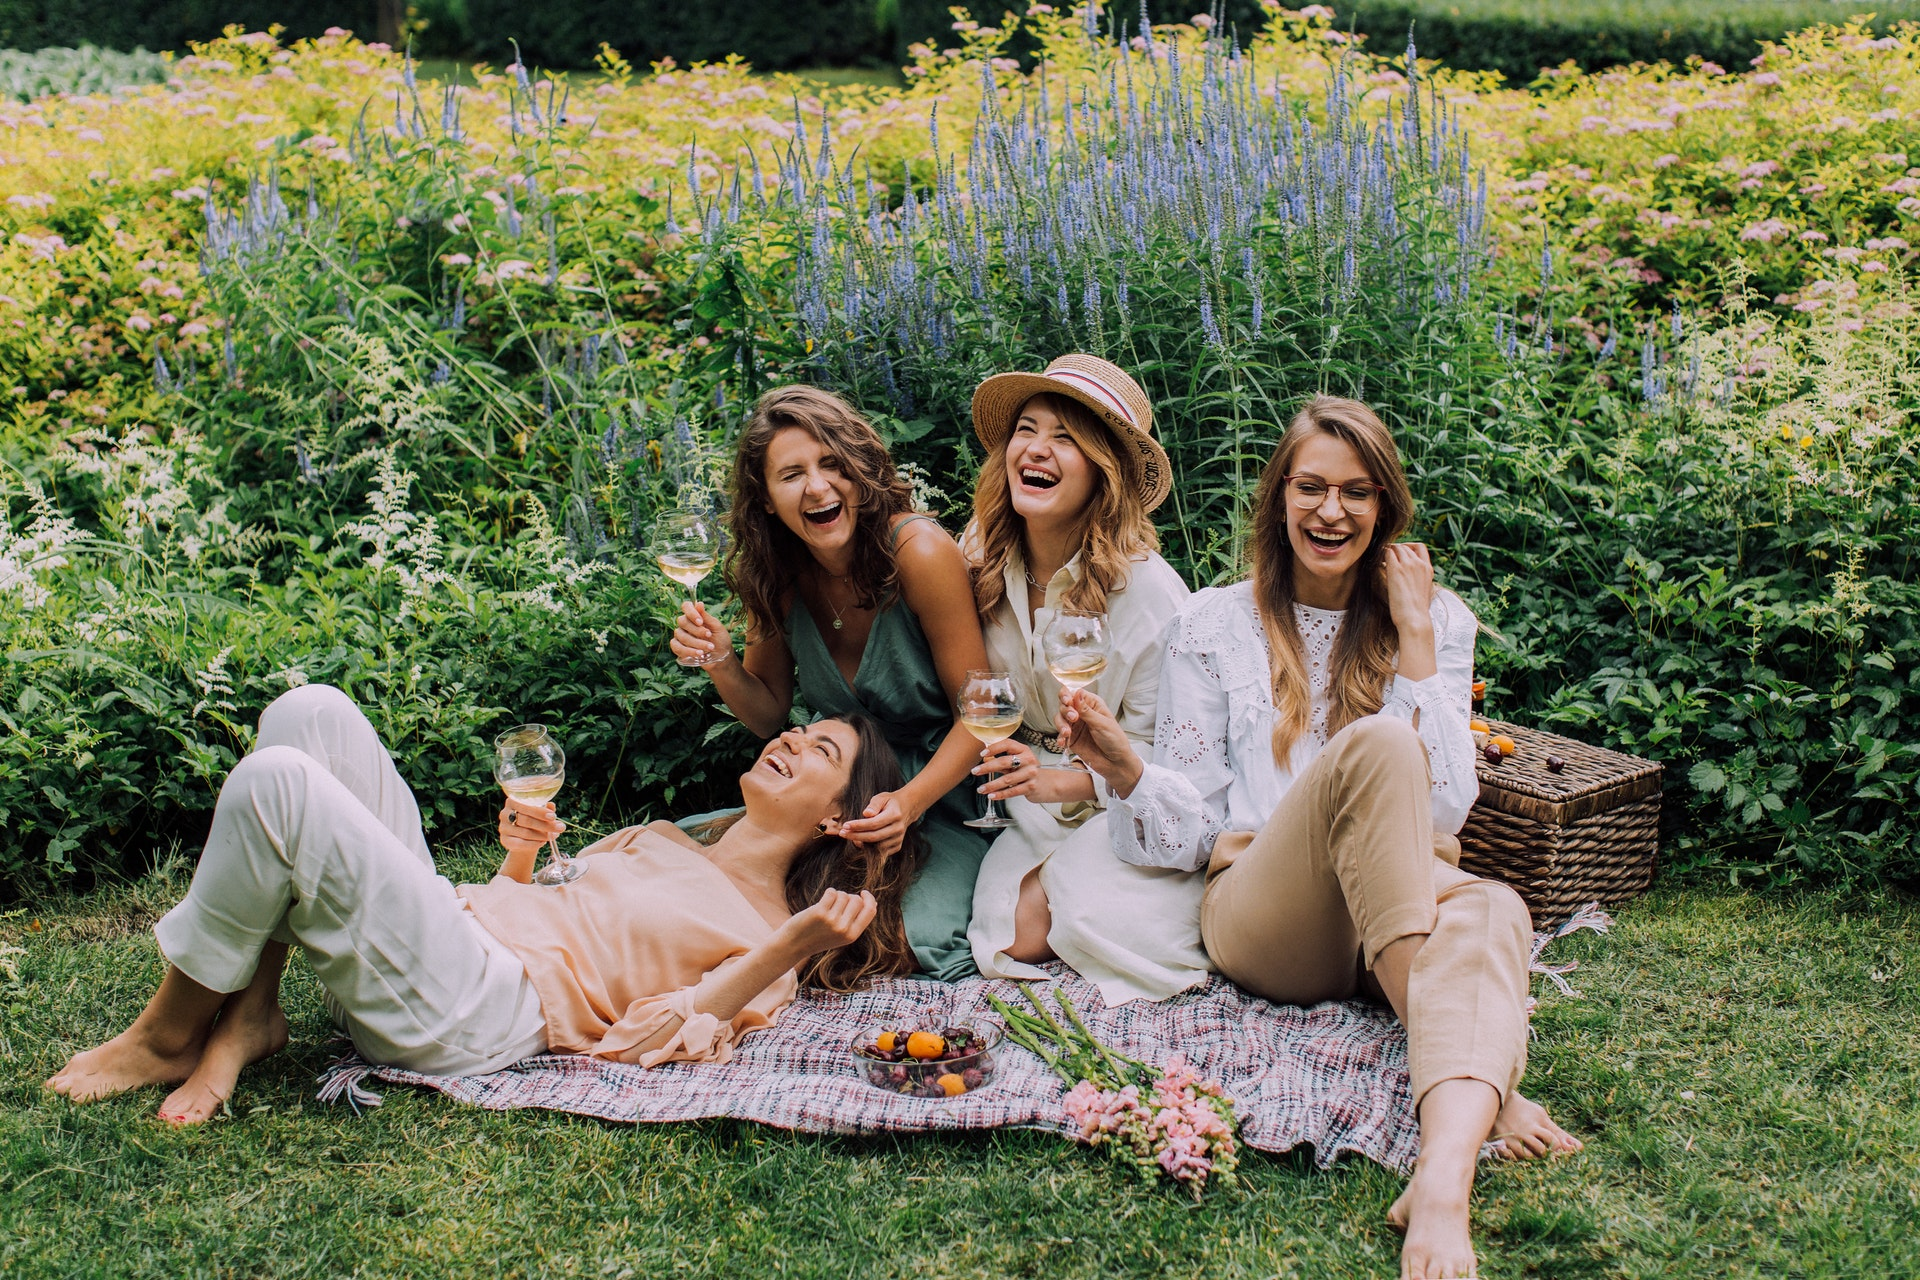 Women laughing at a picnic